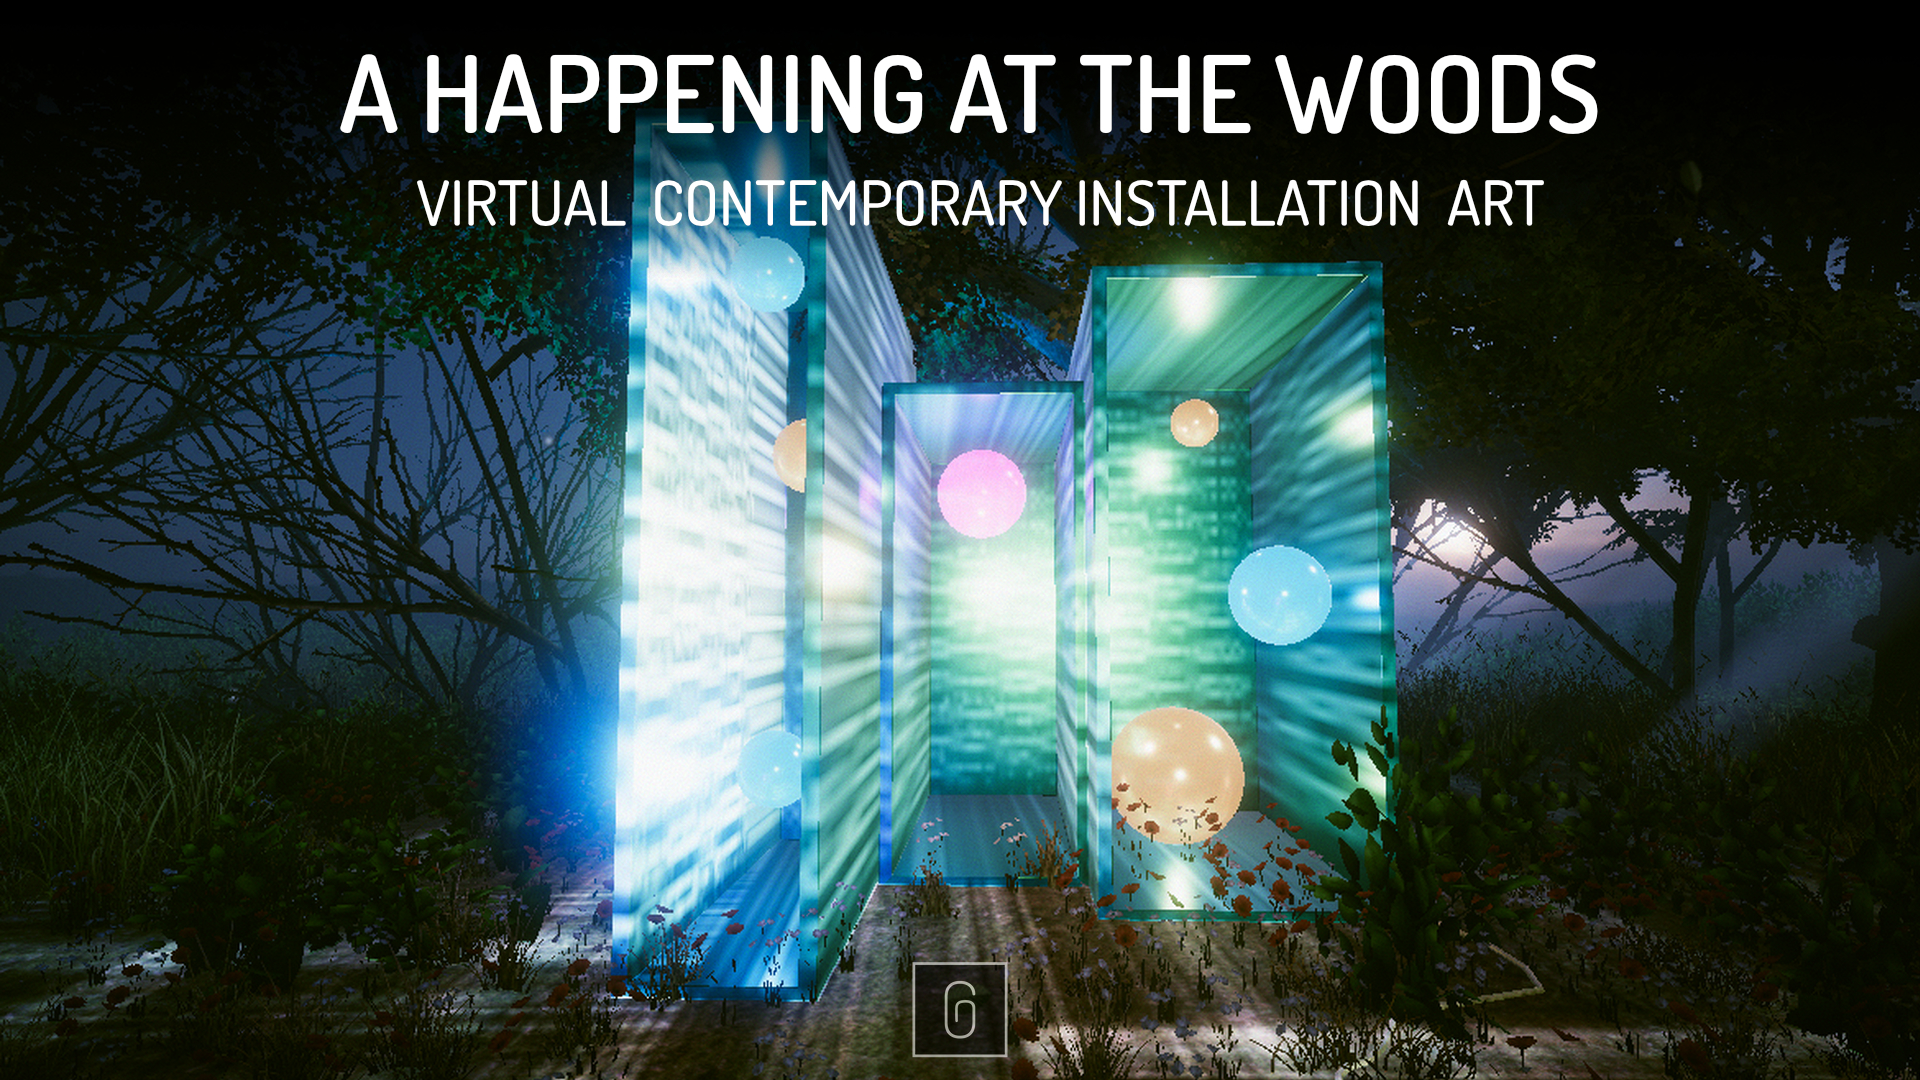 A HAPPENING AT THE WOODS